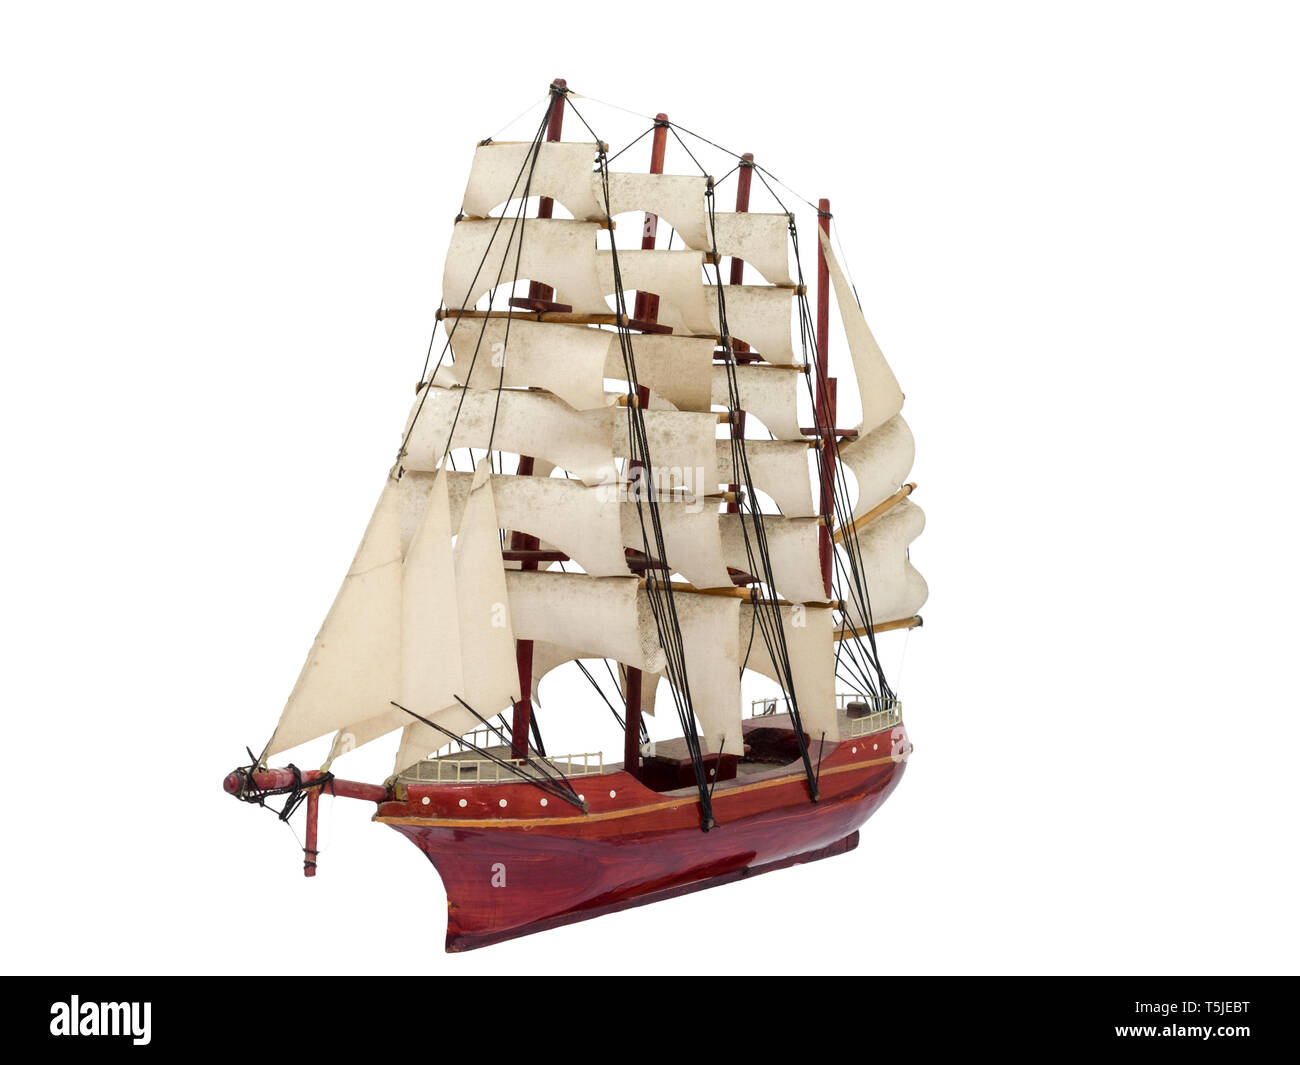 Barque ship gift craft model wooden,isolated white background - Stock Image